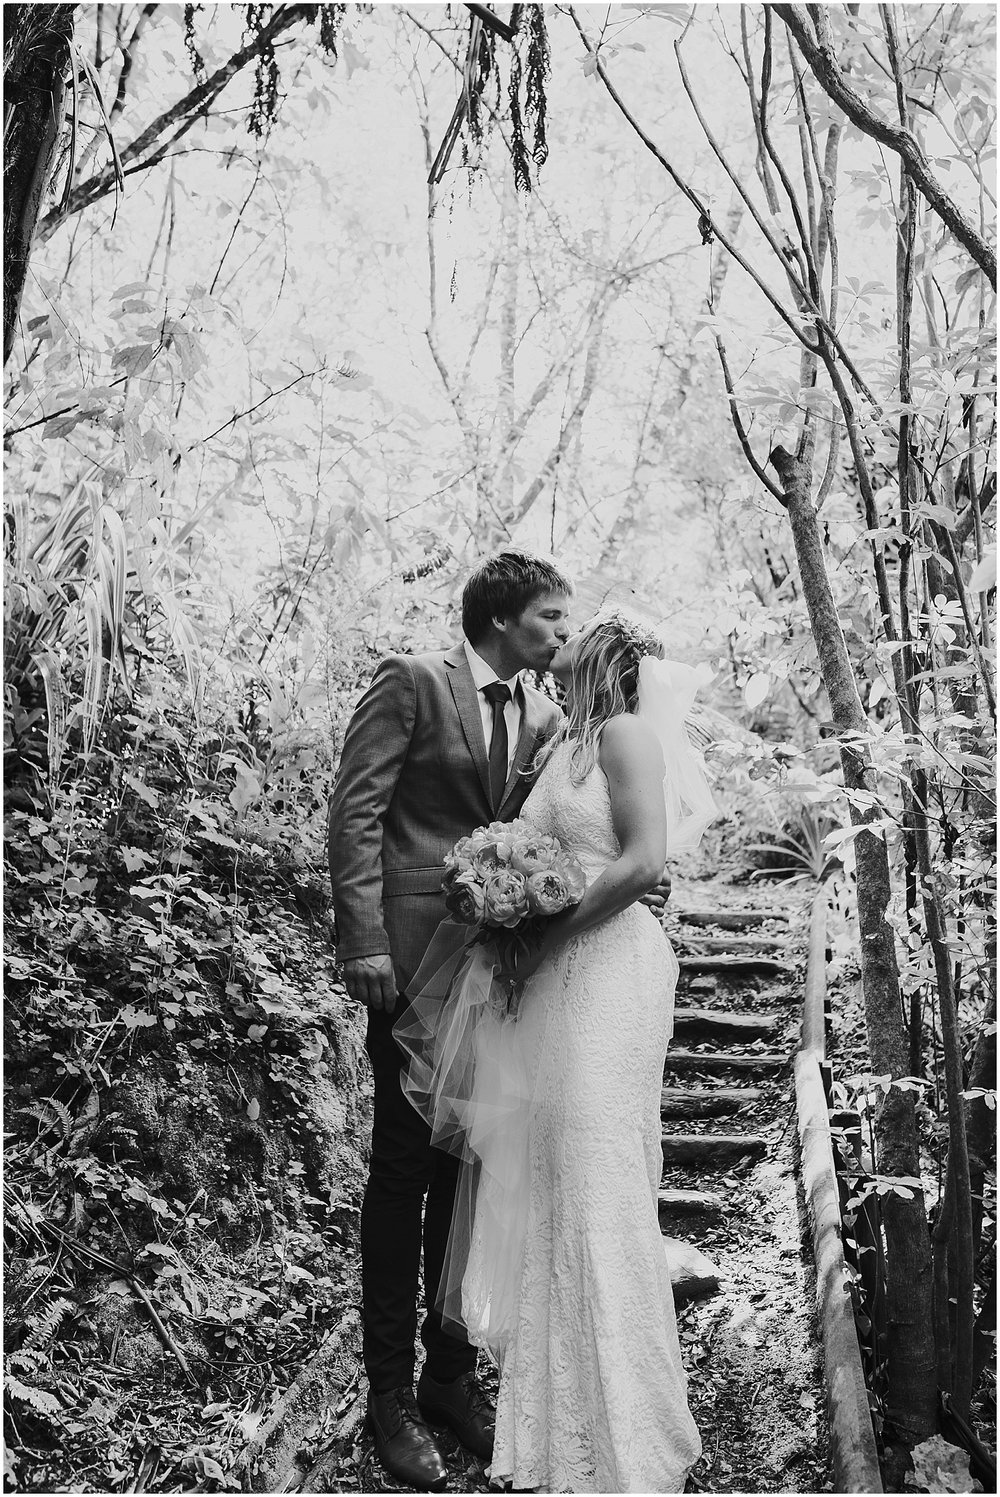 Bride + Groom Portrait in Bush| Carmen Peter Photography